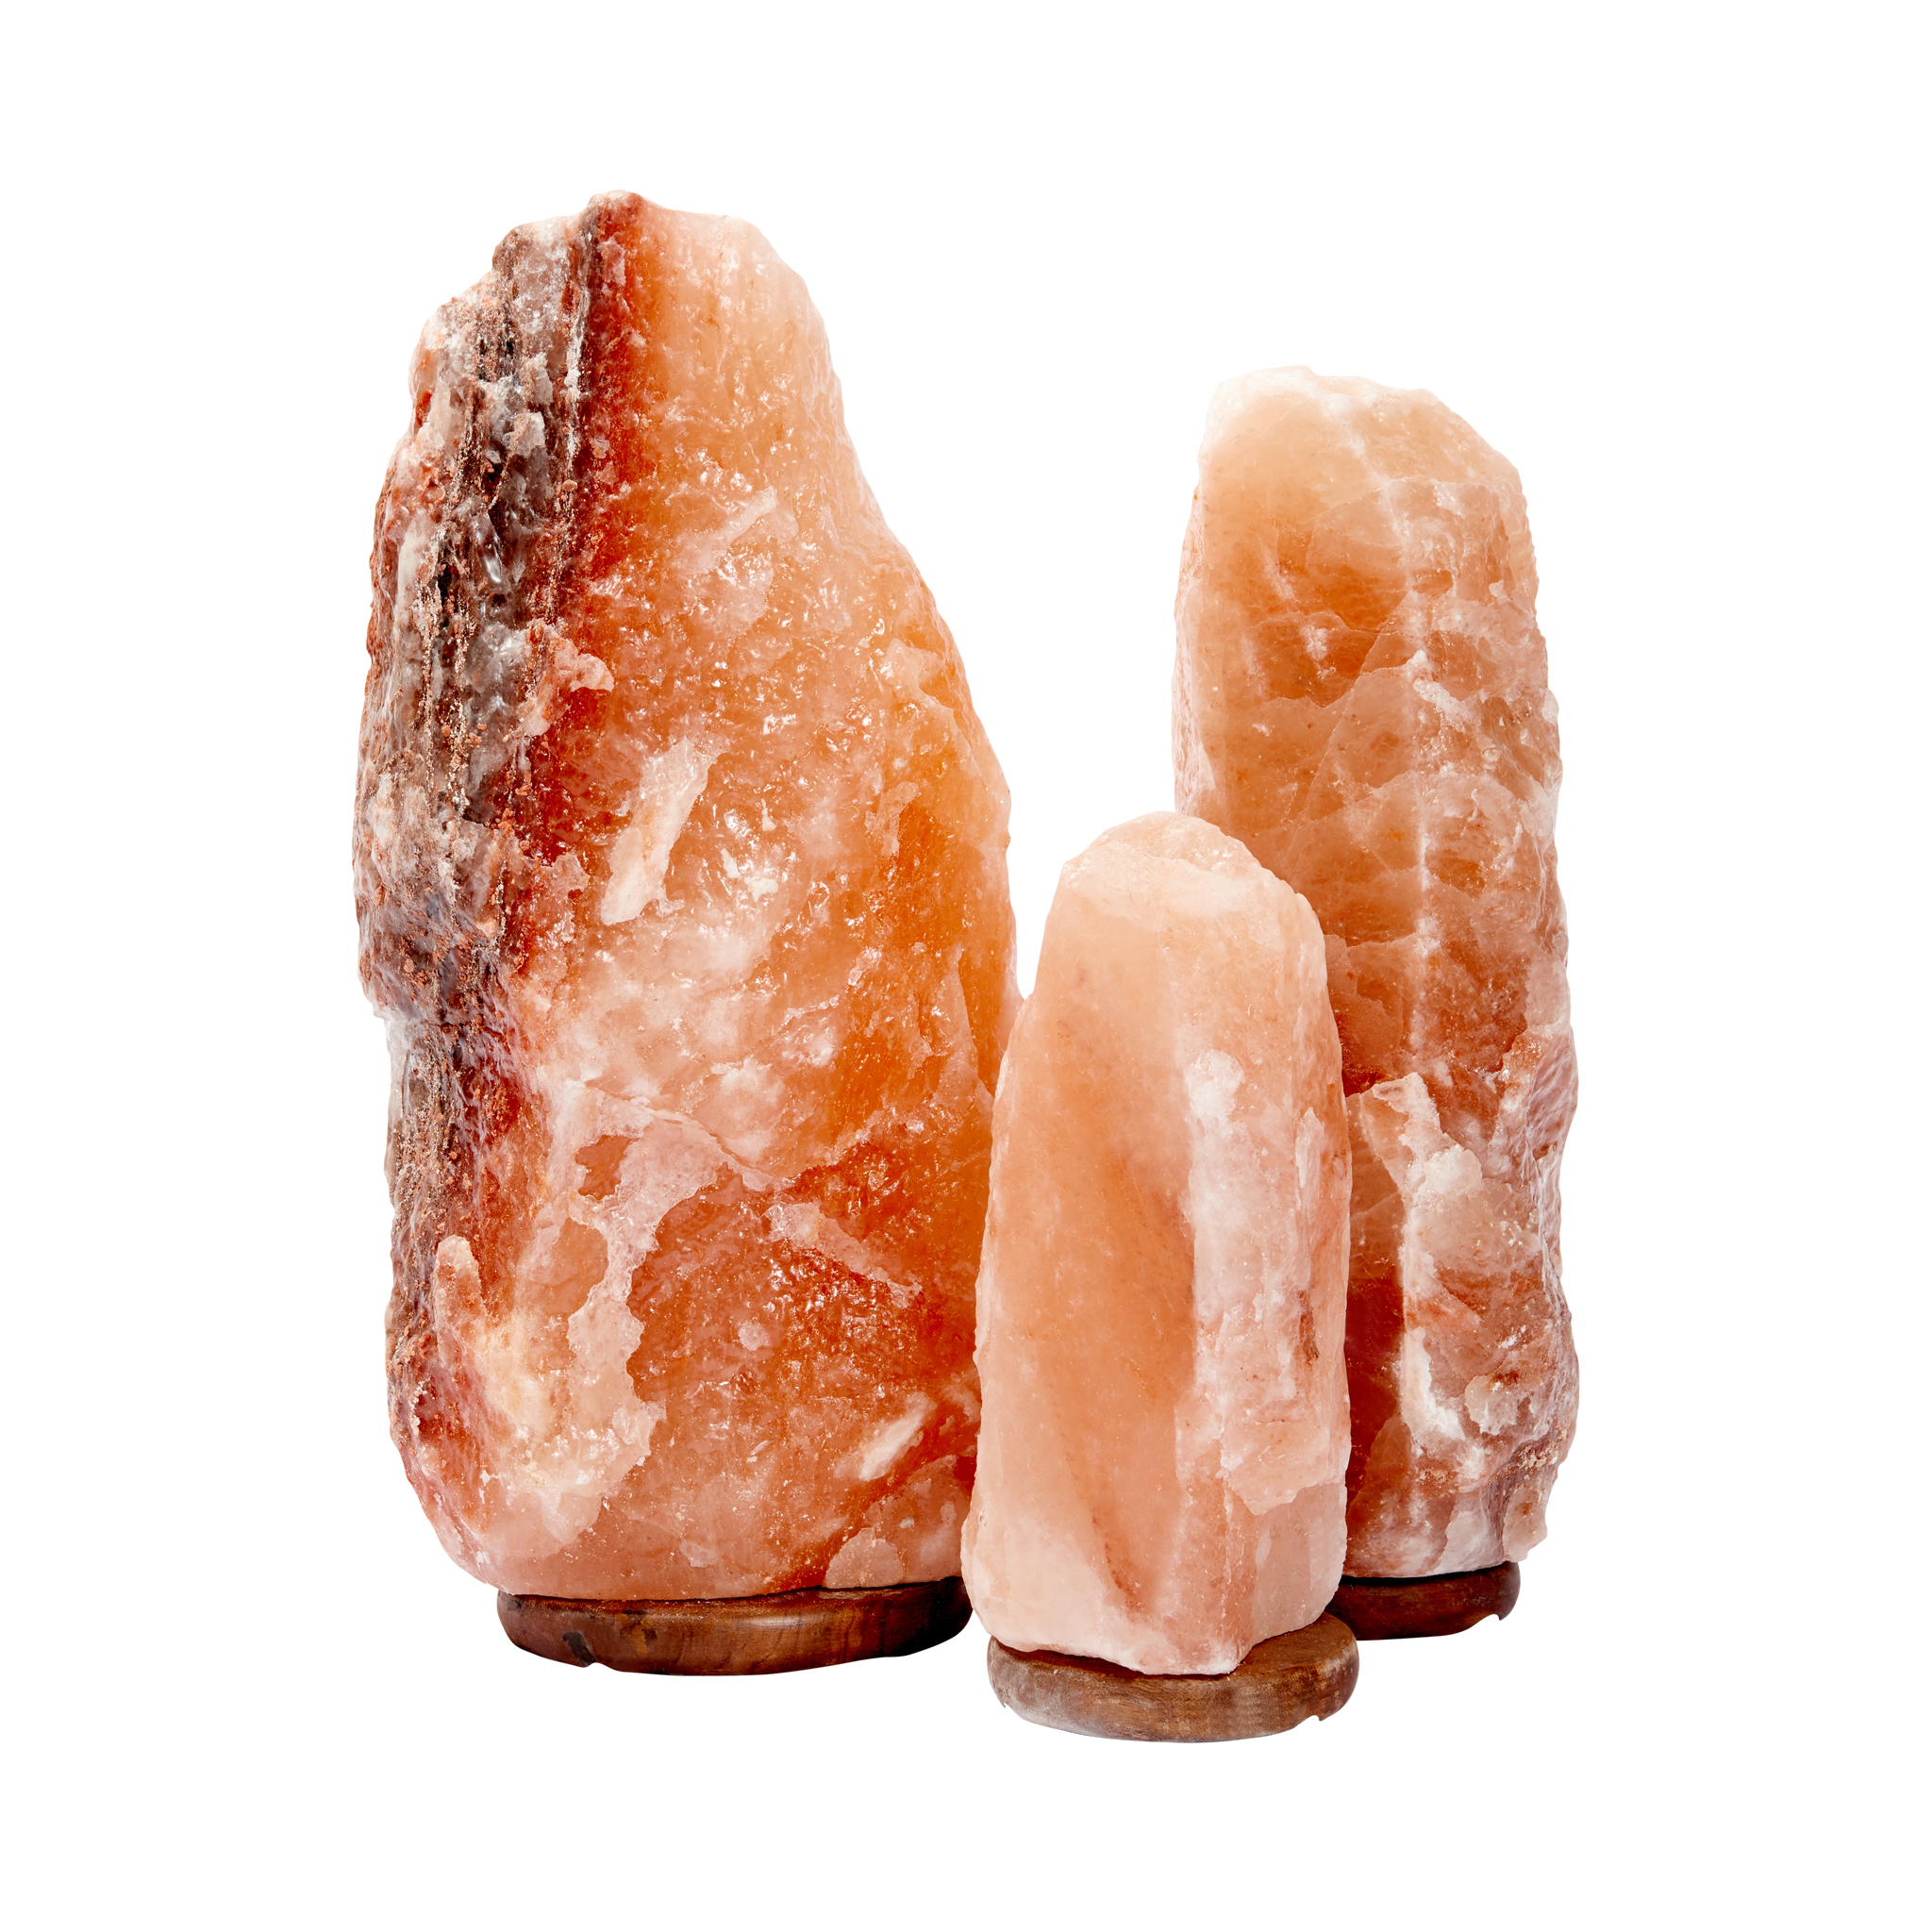 IN STOCK - Certified Salt Lamp: 21-25lbs